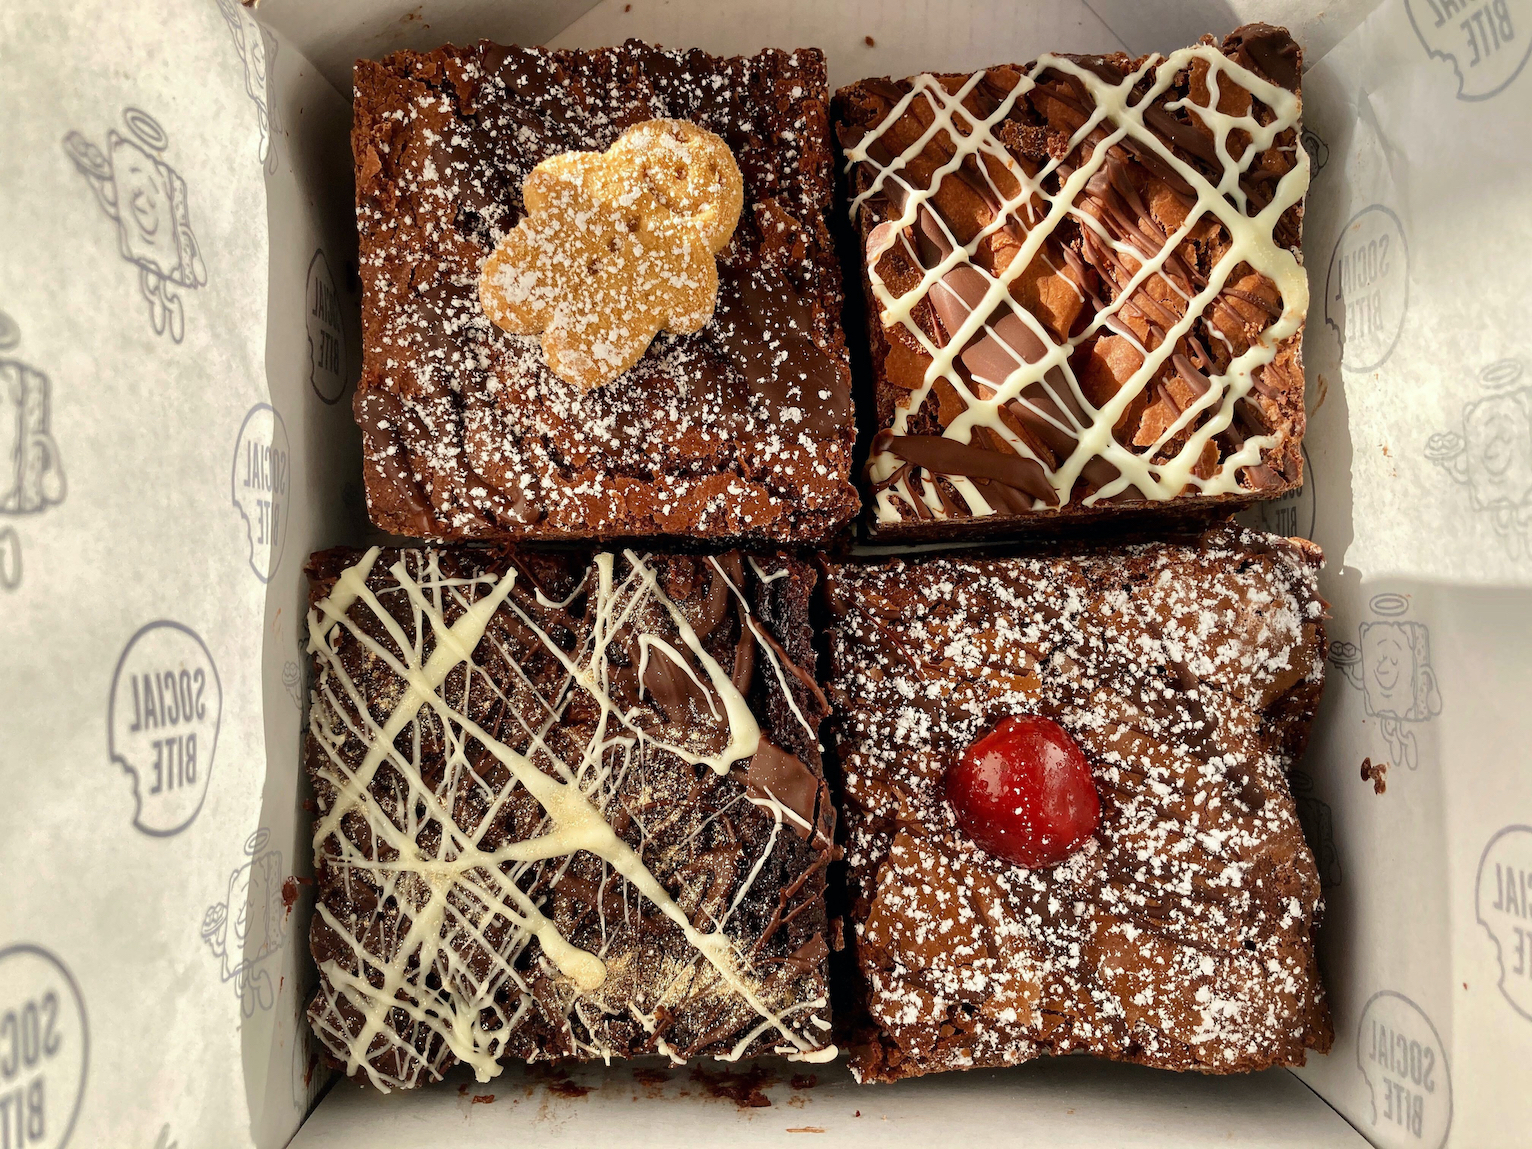 View of the brownies from above - Food and Drink News Scotland